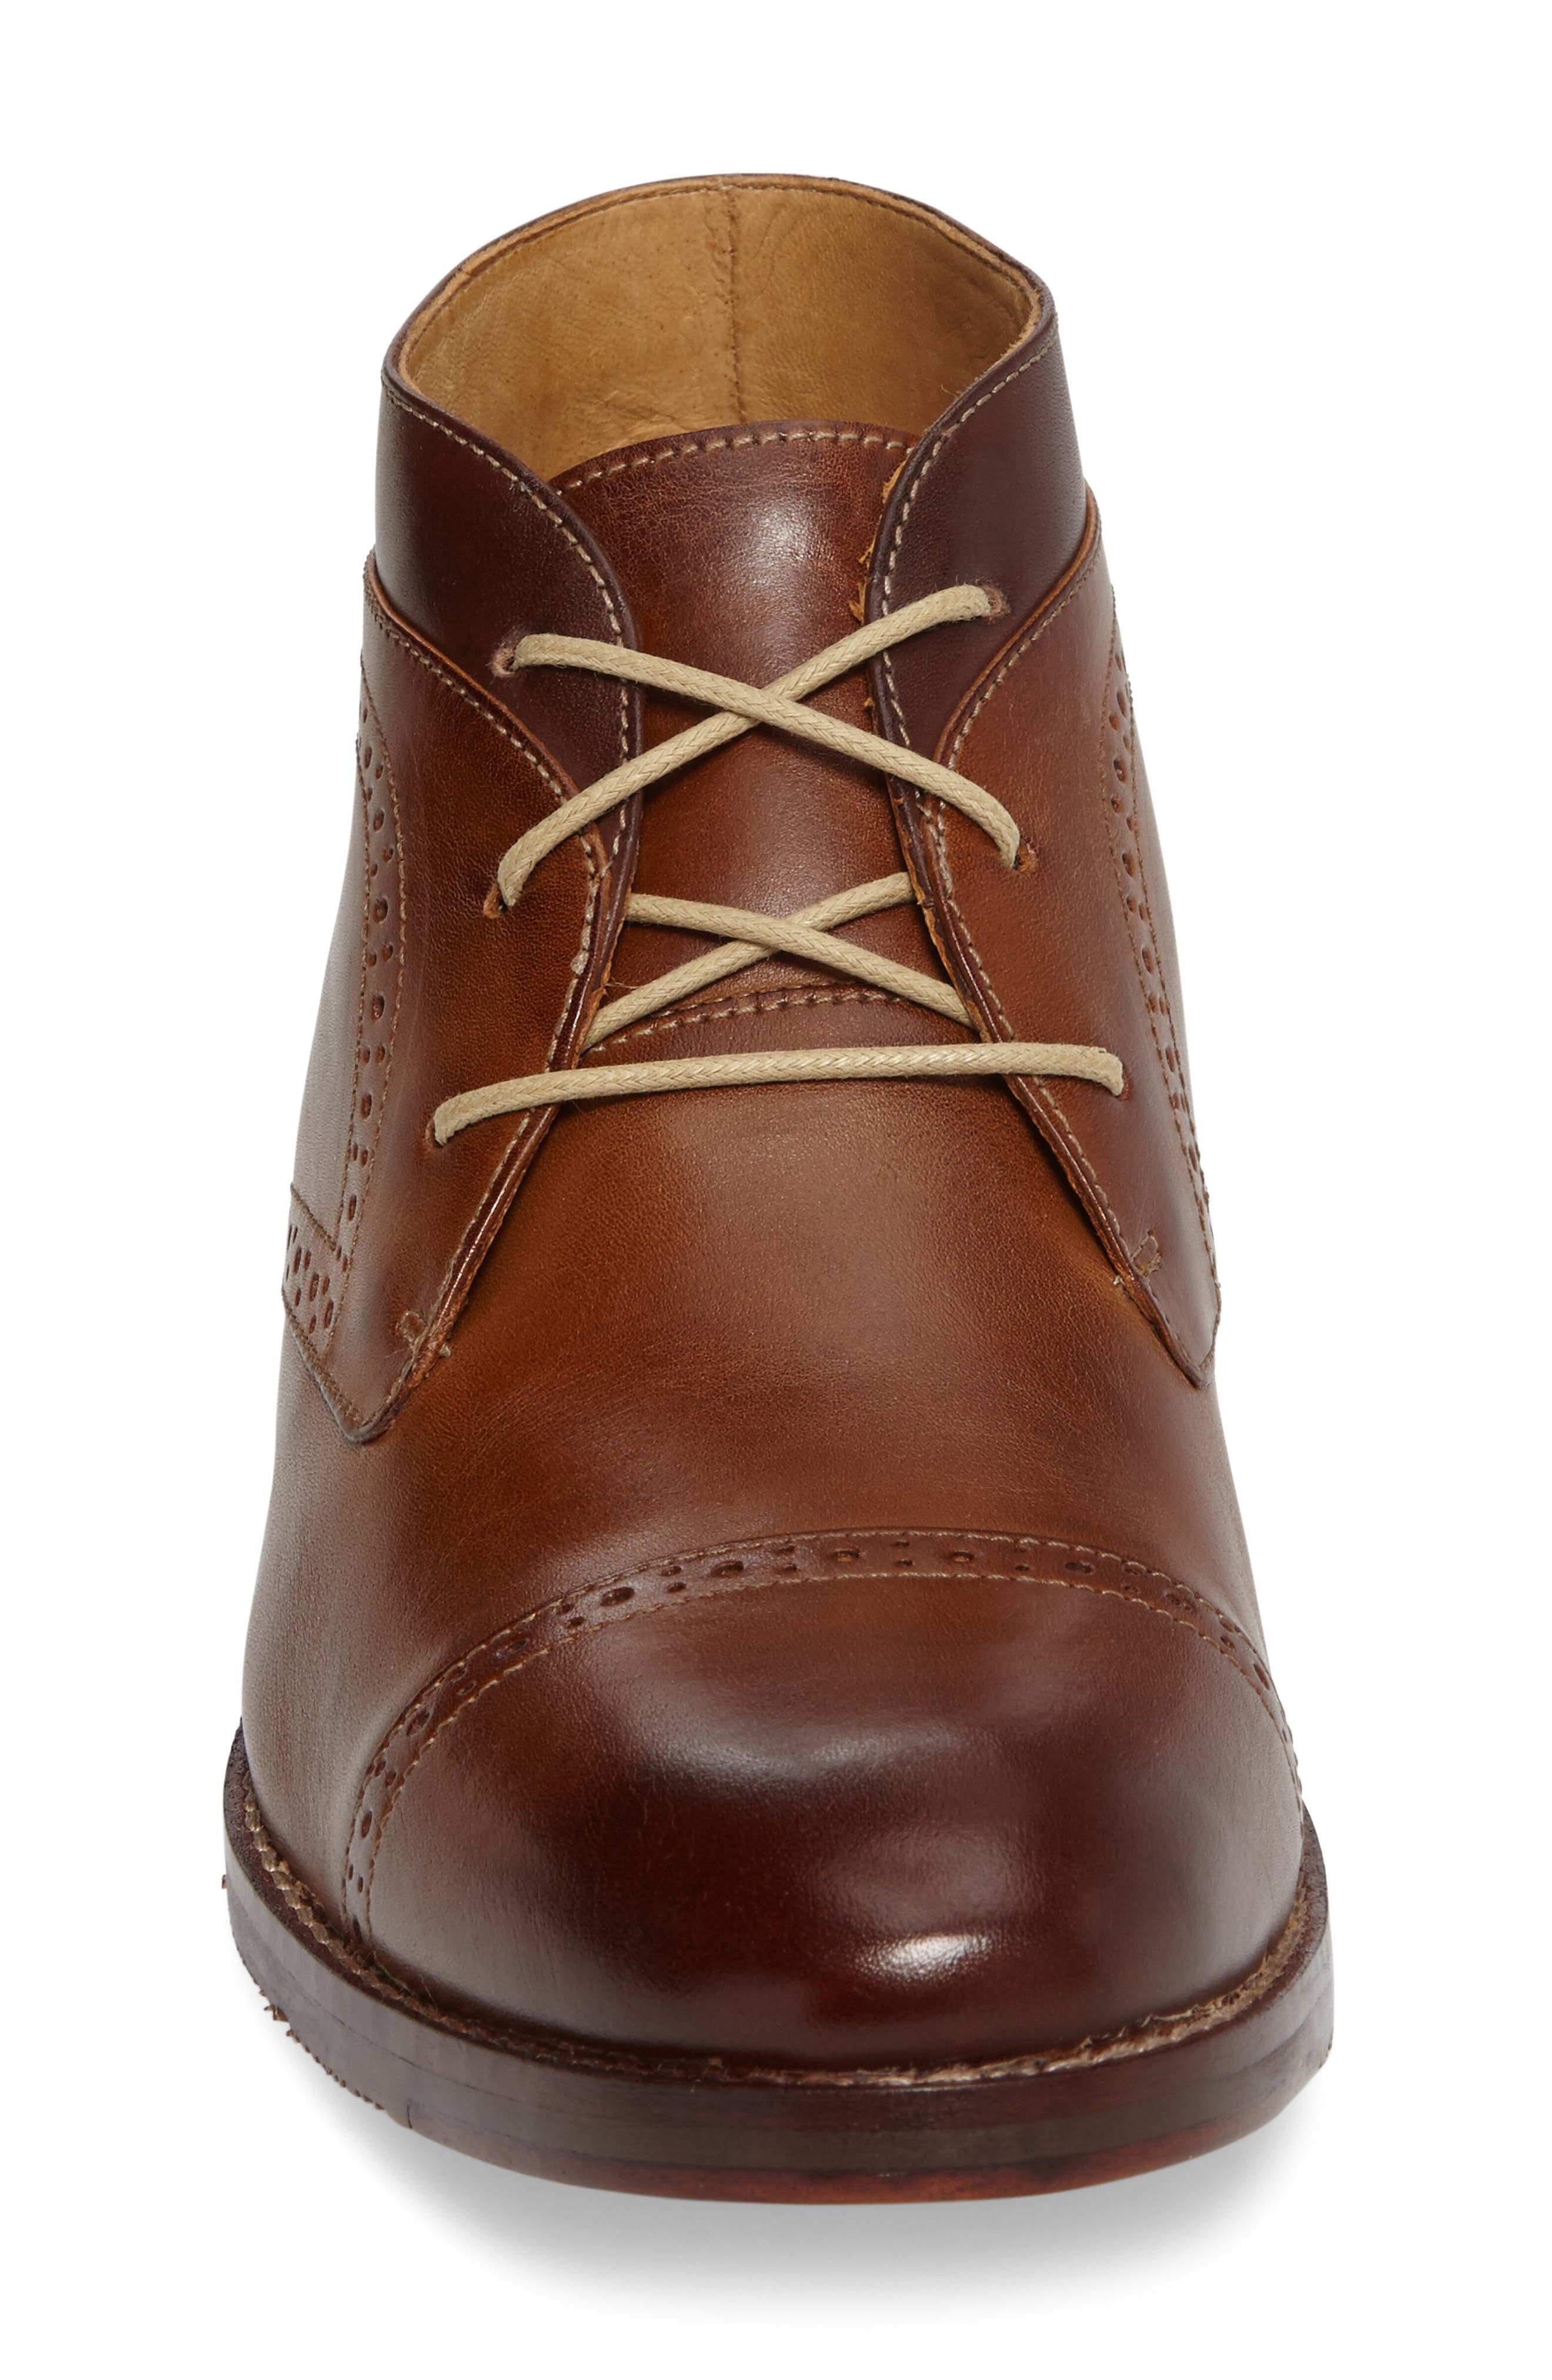 Garner Cap Toe Chukka Boot,                             Alternate thumbnail 3, color,